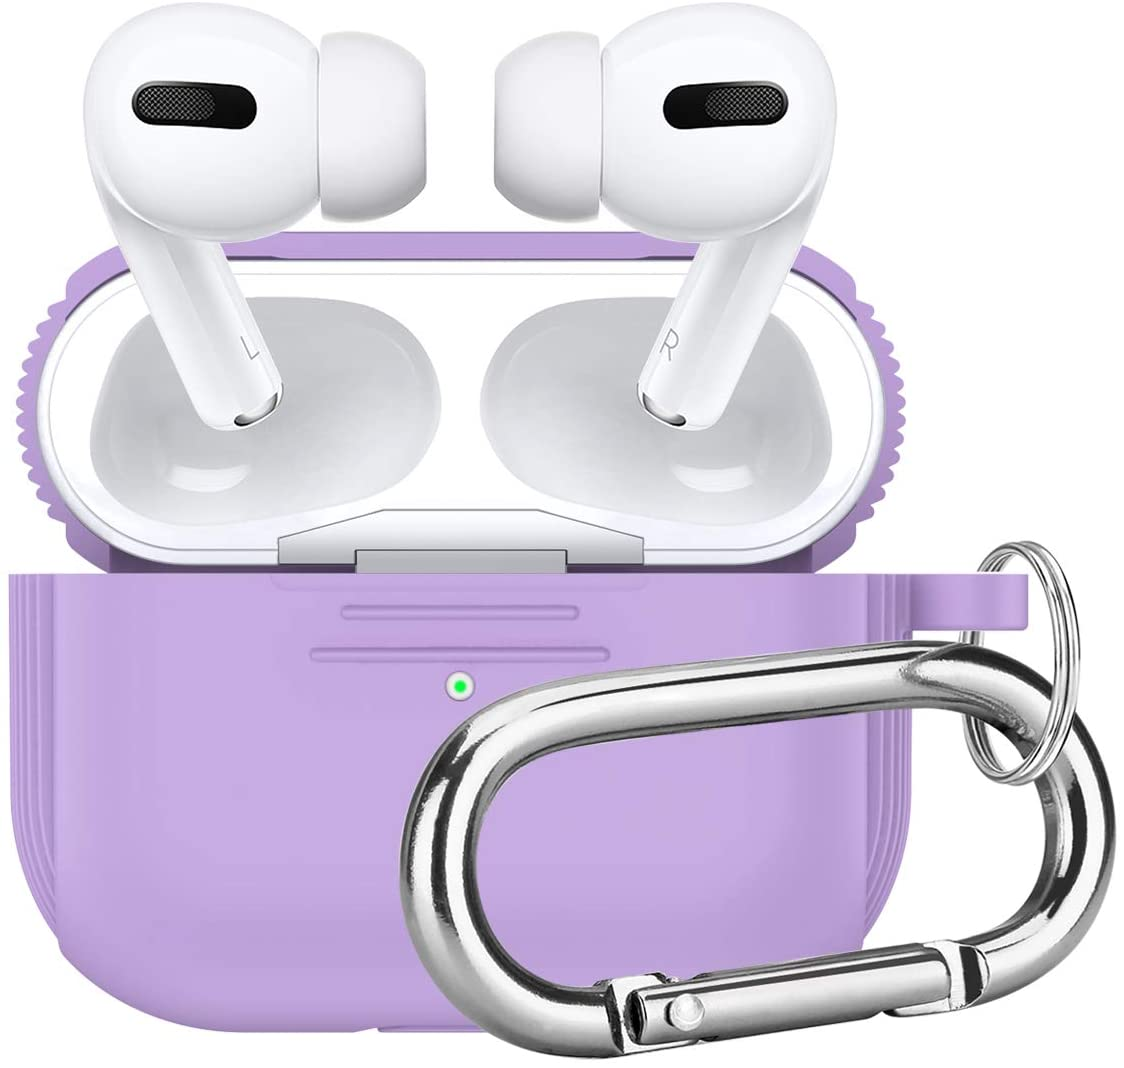 Camyse Airpods Pro Case Silicone Protective Cover with Keychain and Airpods Pro Accessories Compatible with Airpods 3 Pro Charging Case (Purple)